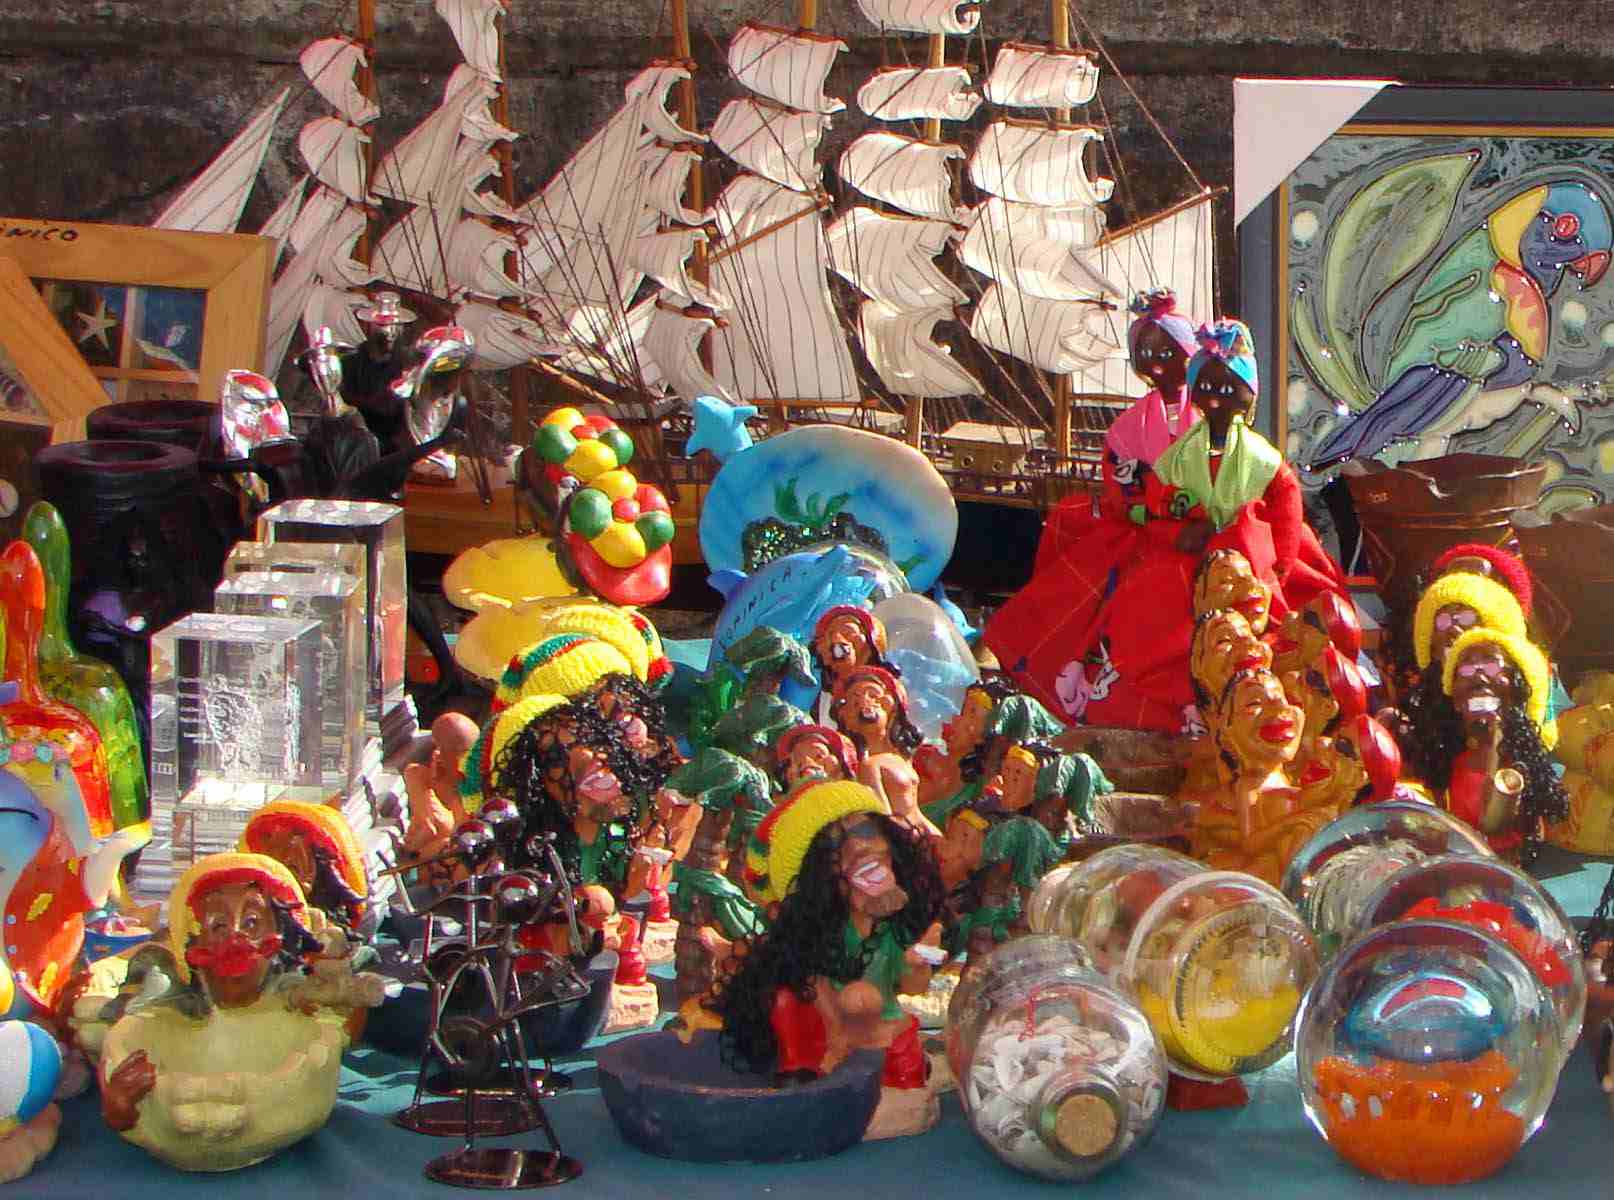 Cheap merchandise is on display for free-spending tourists.